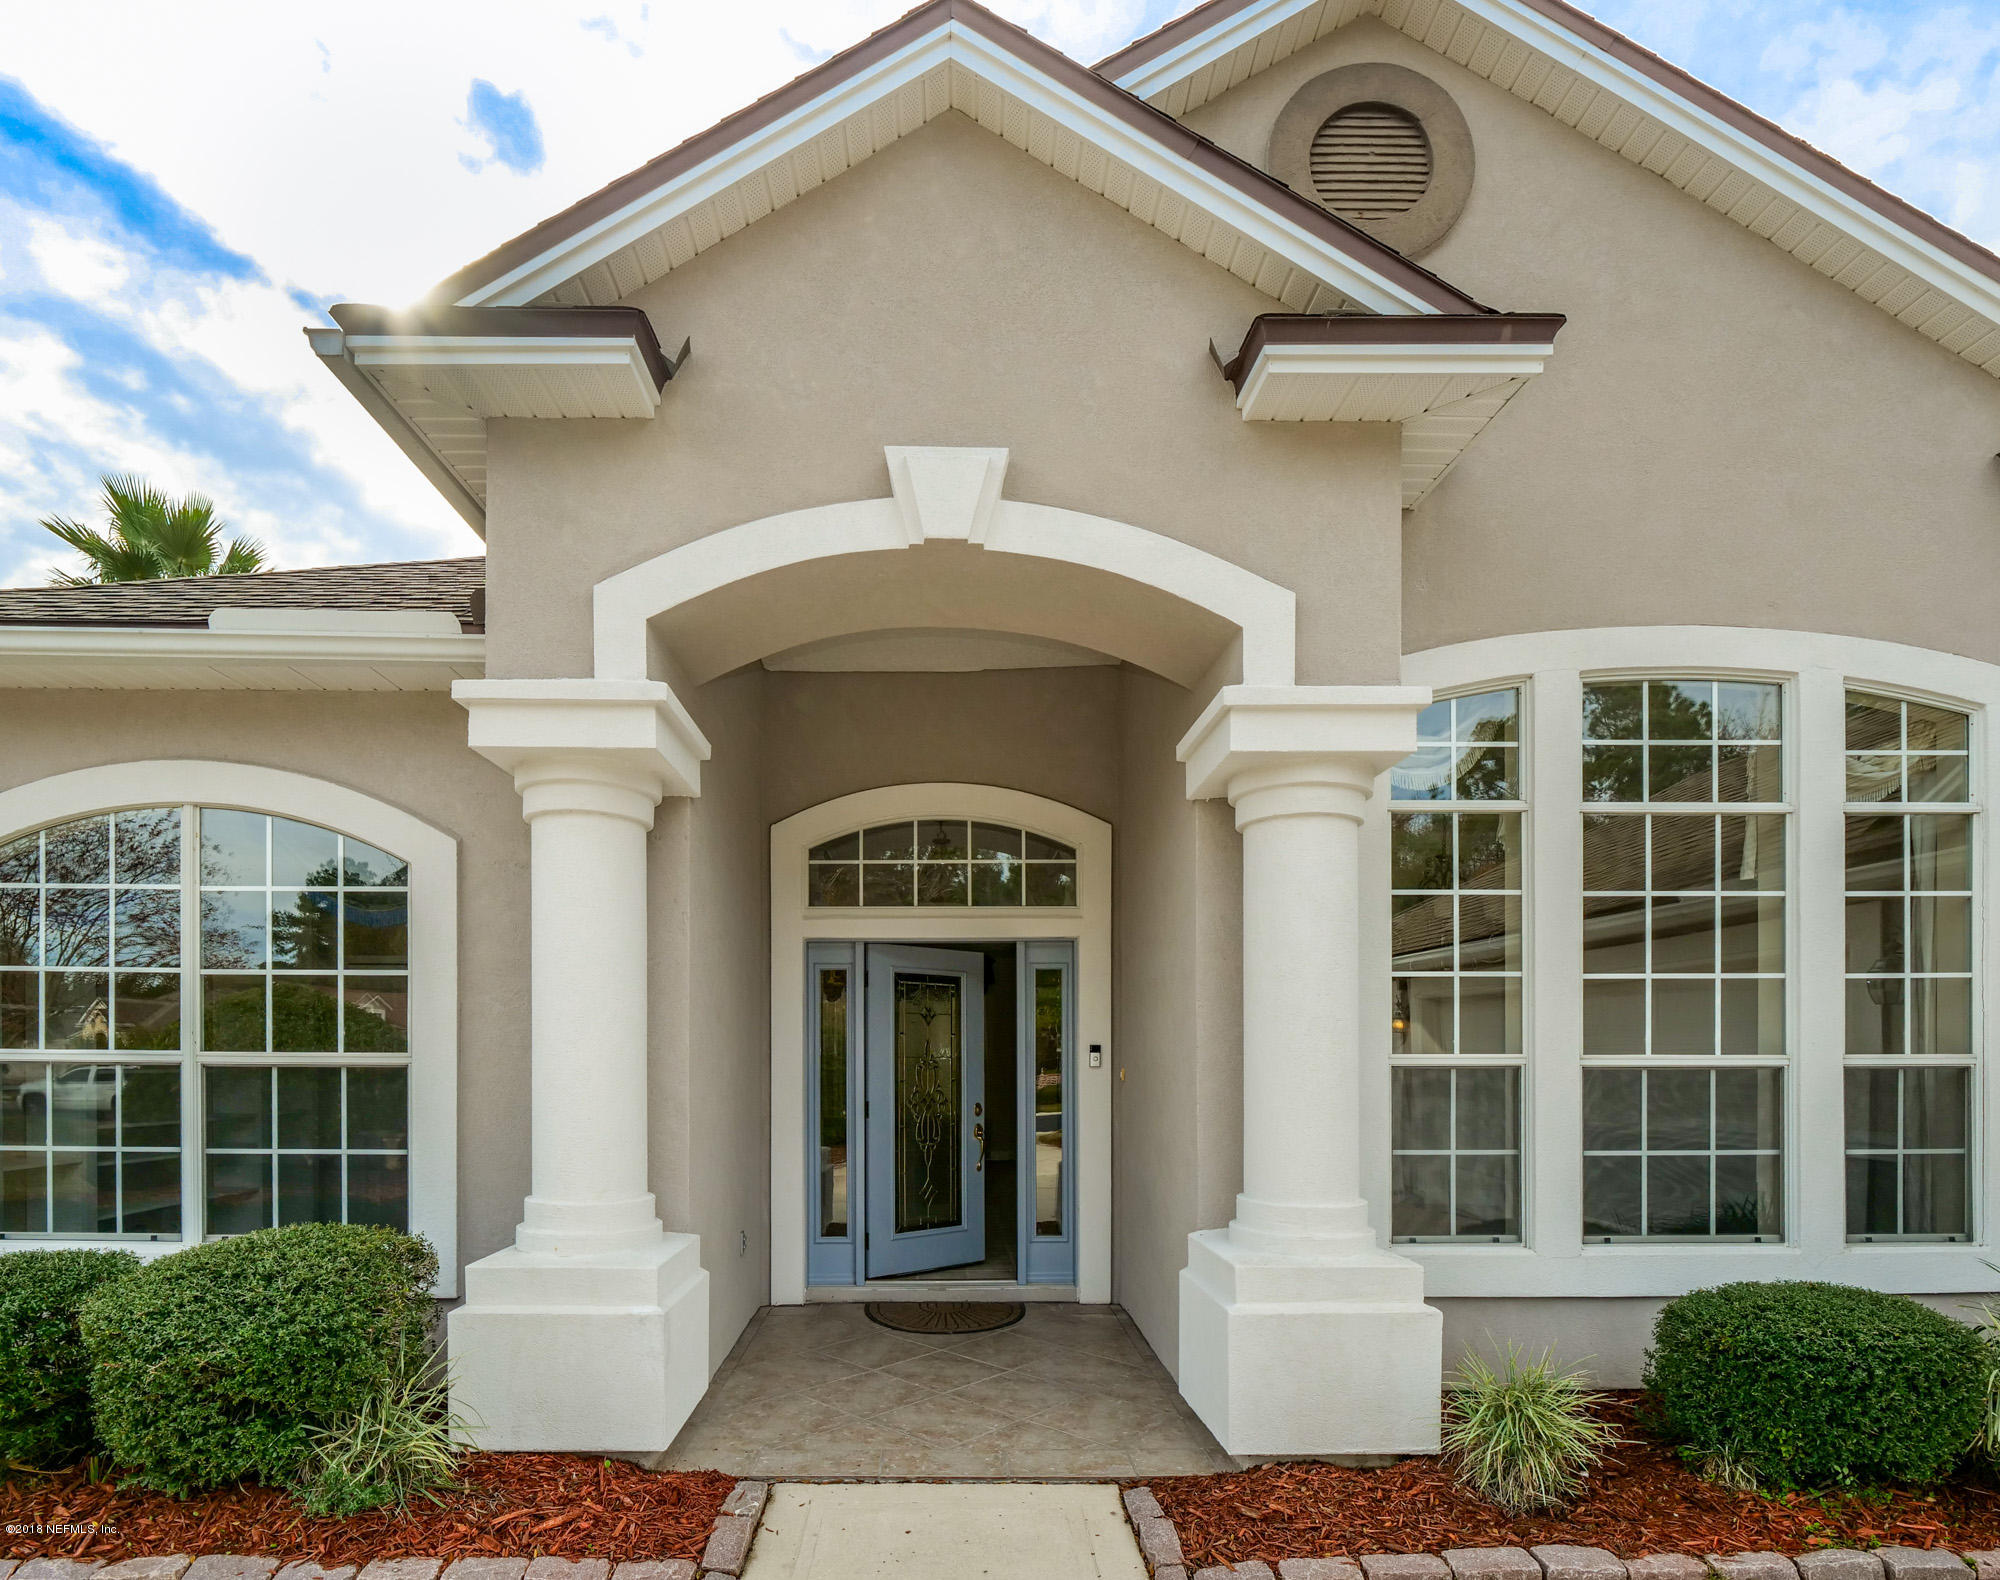 3103 COUNTRY CLUB, ORANGE PARK, FLORIDA 32073, 4 Bedrooms Bedrooms, ,4 BathroomsBathrooms,Residential - single family,For sale,COUNTRY CLUB,972002